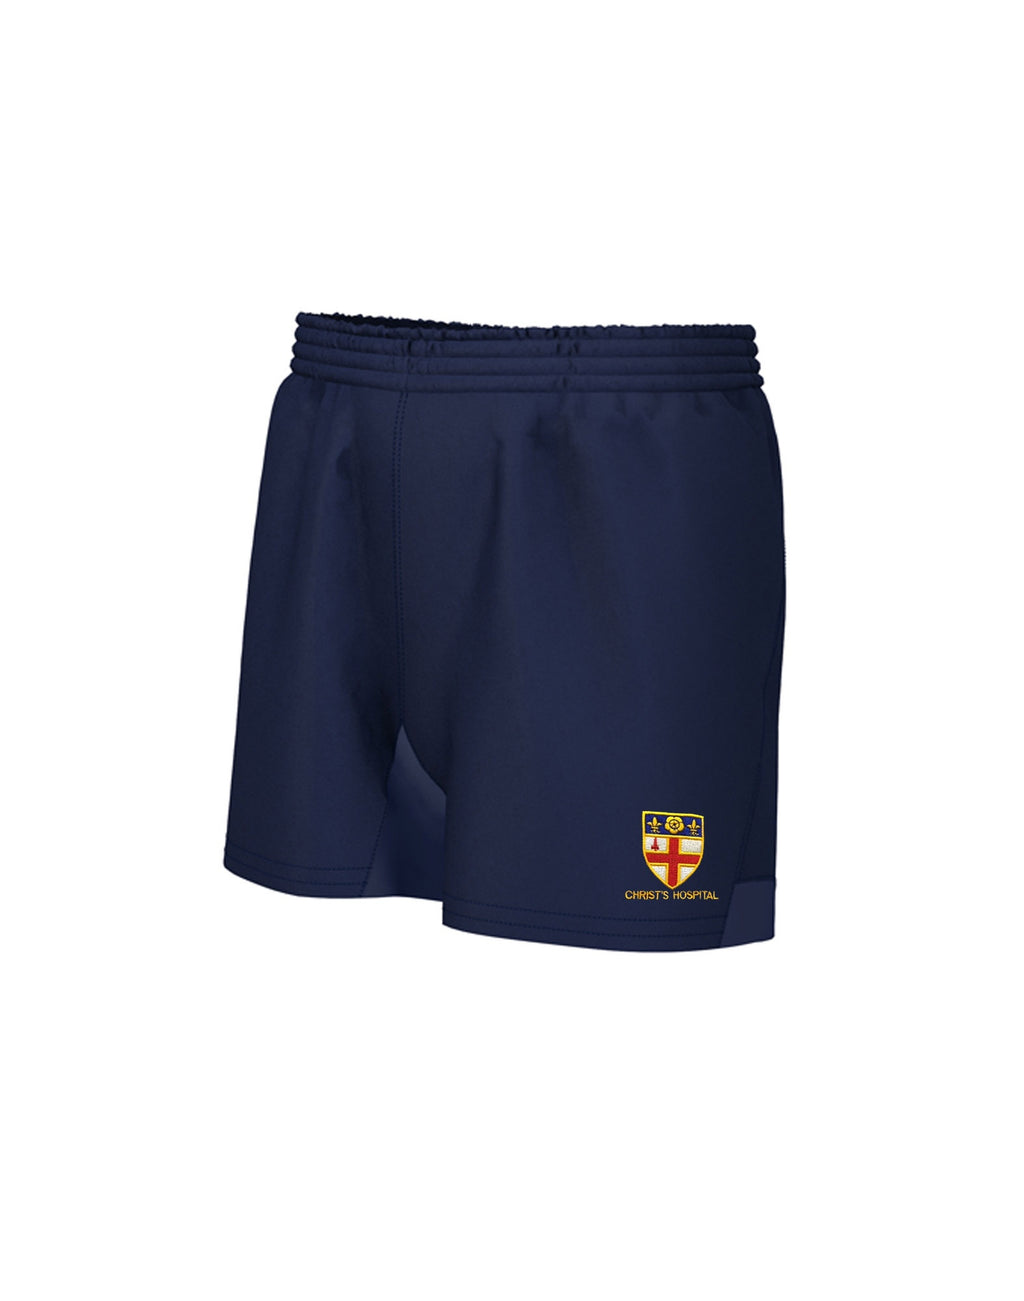 Christ's Hospital Rugby Shorts - New!